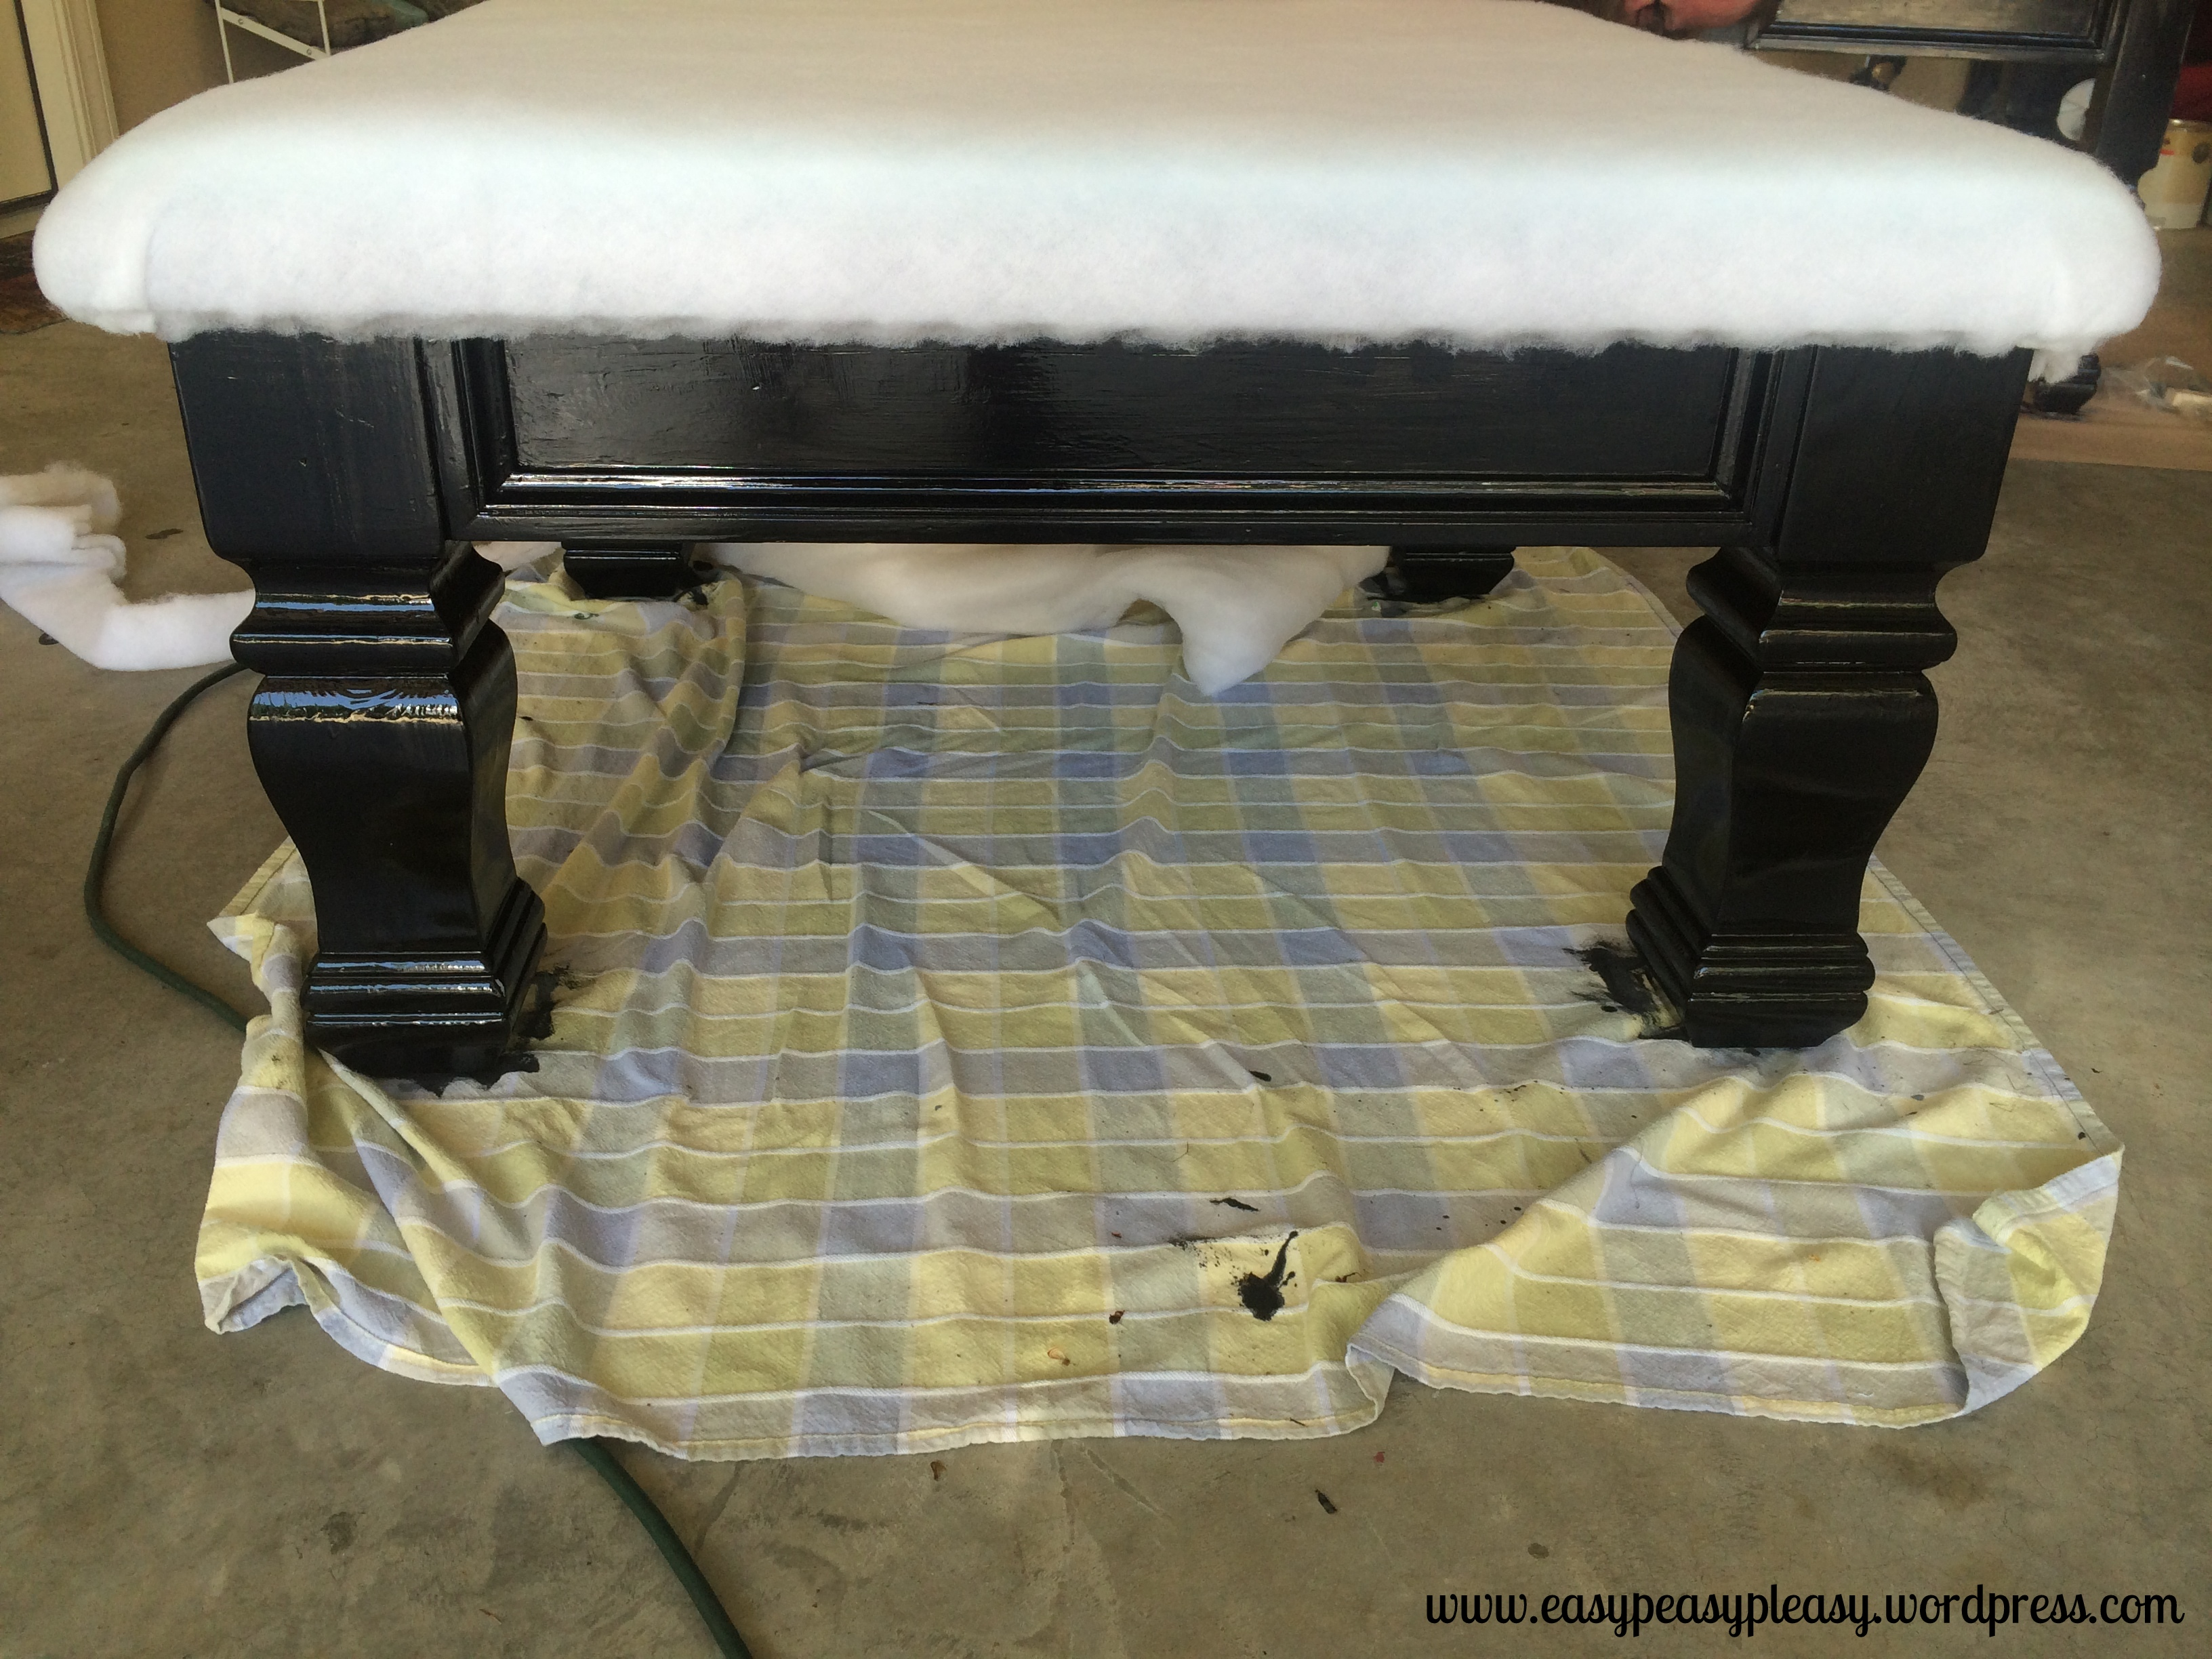 Adding loft batting to a #DIY table turned ottoman.